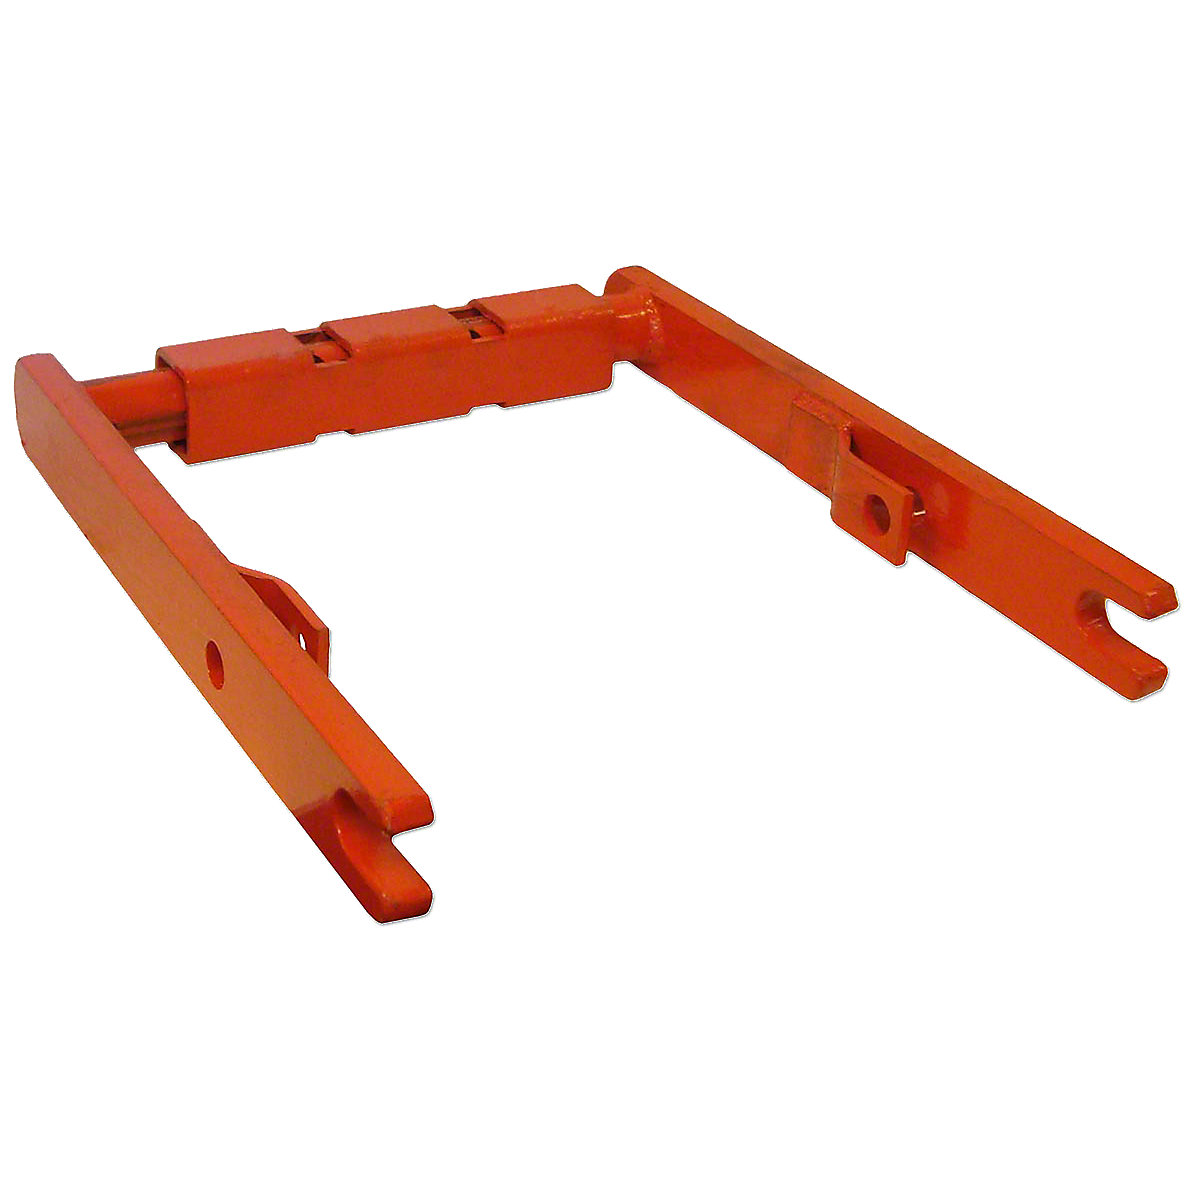 Draw Bar Guide Assembly For Allis Chalmers: WD, WD45.